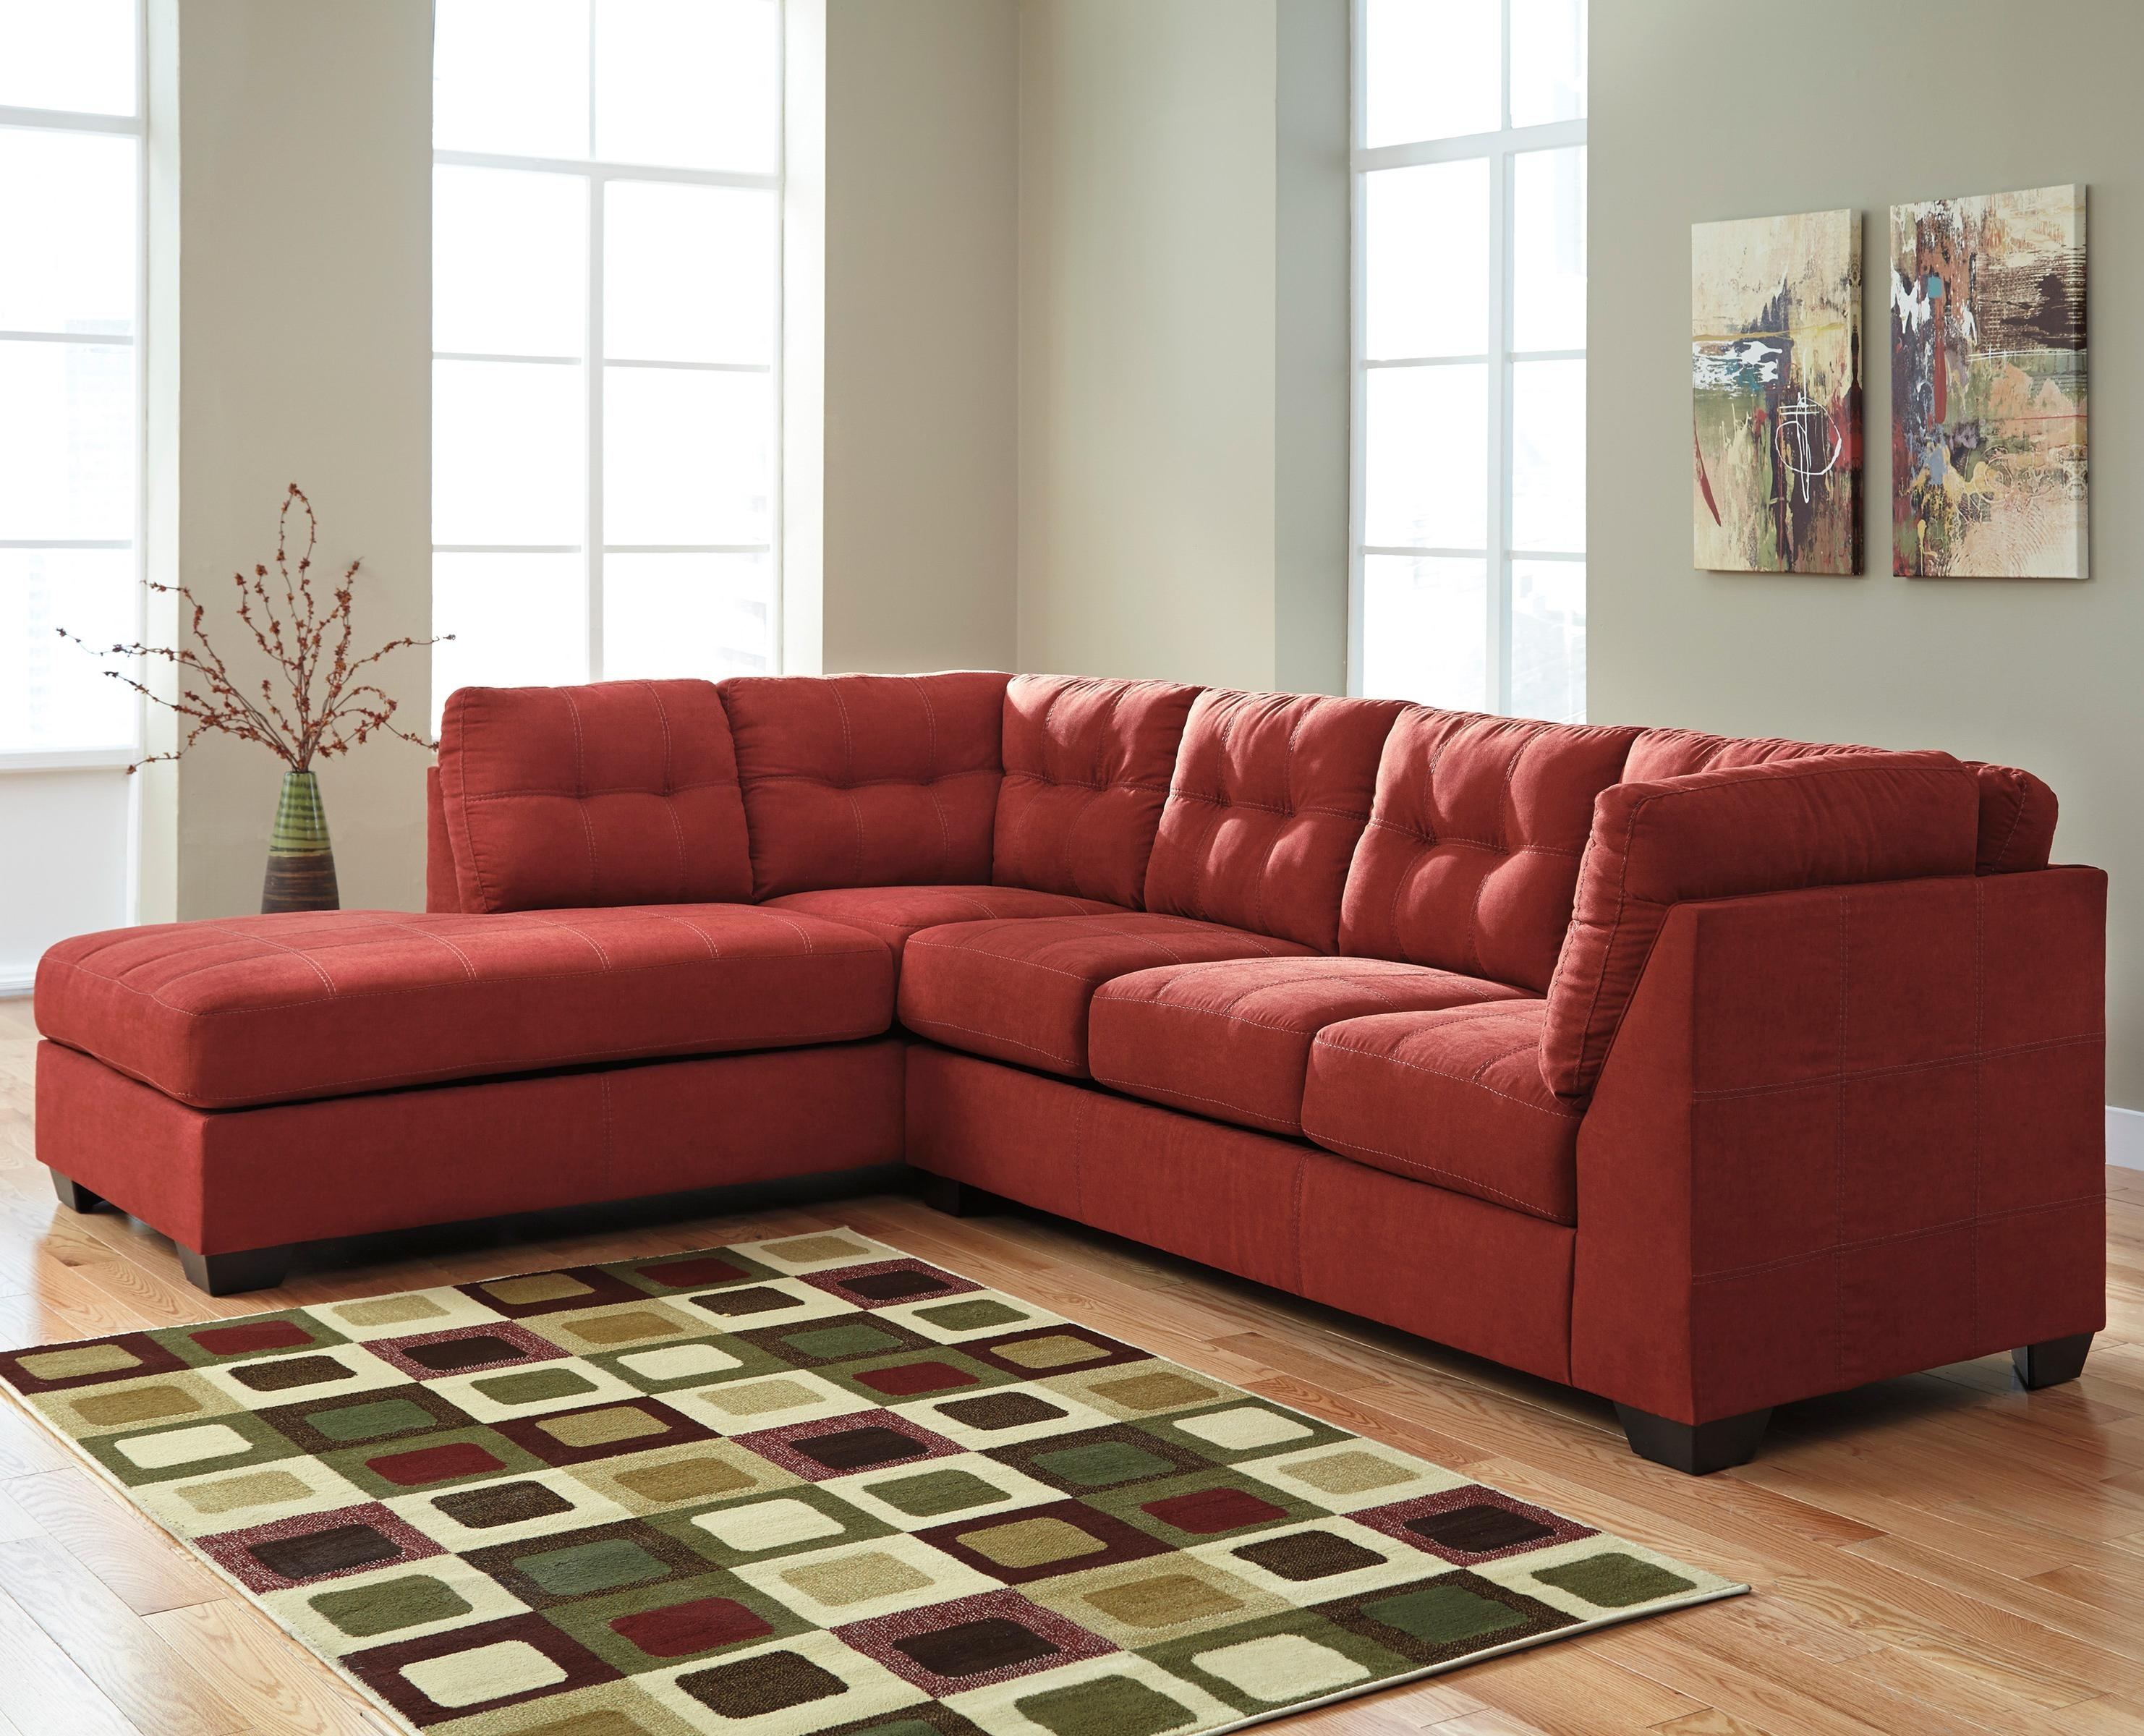 Emerald Home Focus 2 Piece Sectional Sofa With Chaise Curved Pertaining To Evan 2 Piece Sectionals With Raf Chaise (Image 12 of 25)